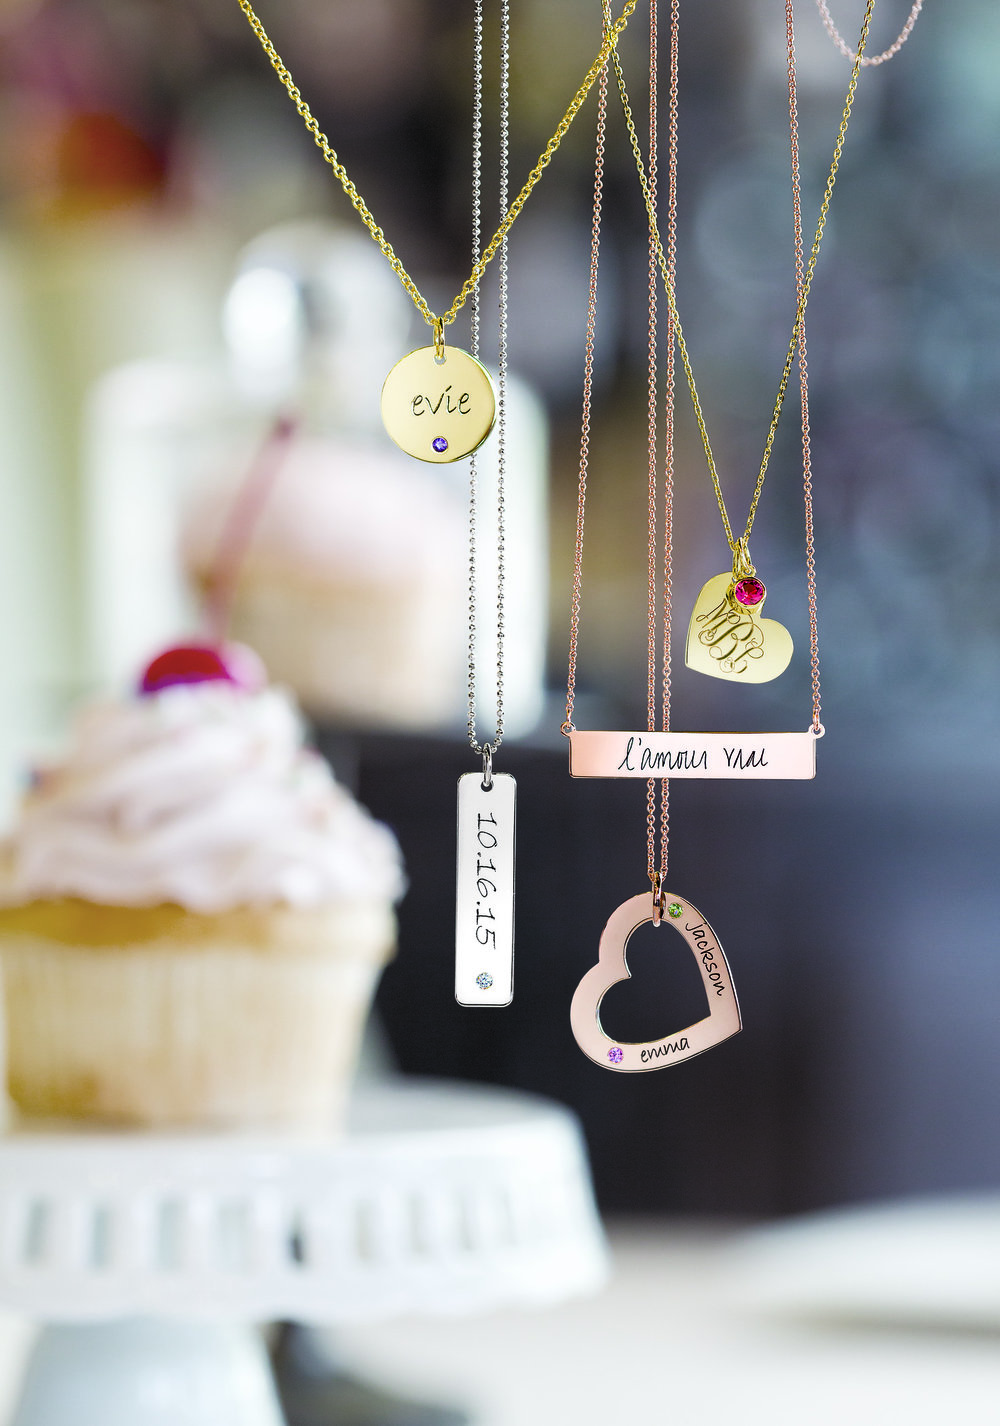 A personalized necklace with the bride's monogram, single initial or the wedding date in roman numerals would make for the perfect gift for your bride! It's sentimental and something she will have forever! Stop by the Jewelry Barn to see the styles we have to offer.